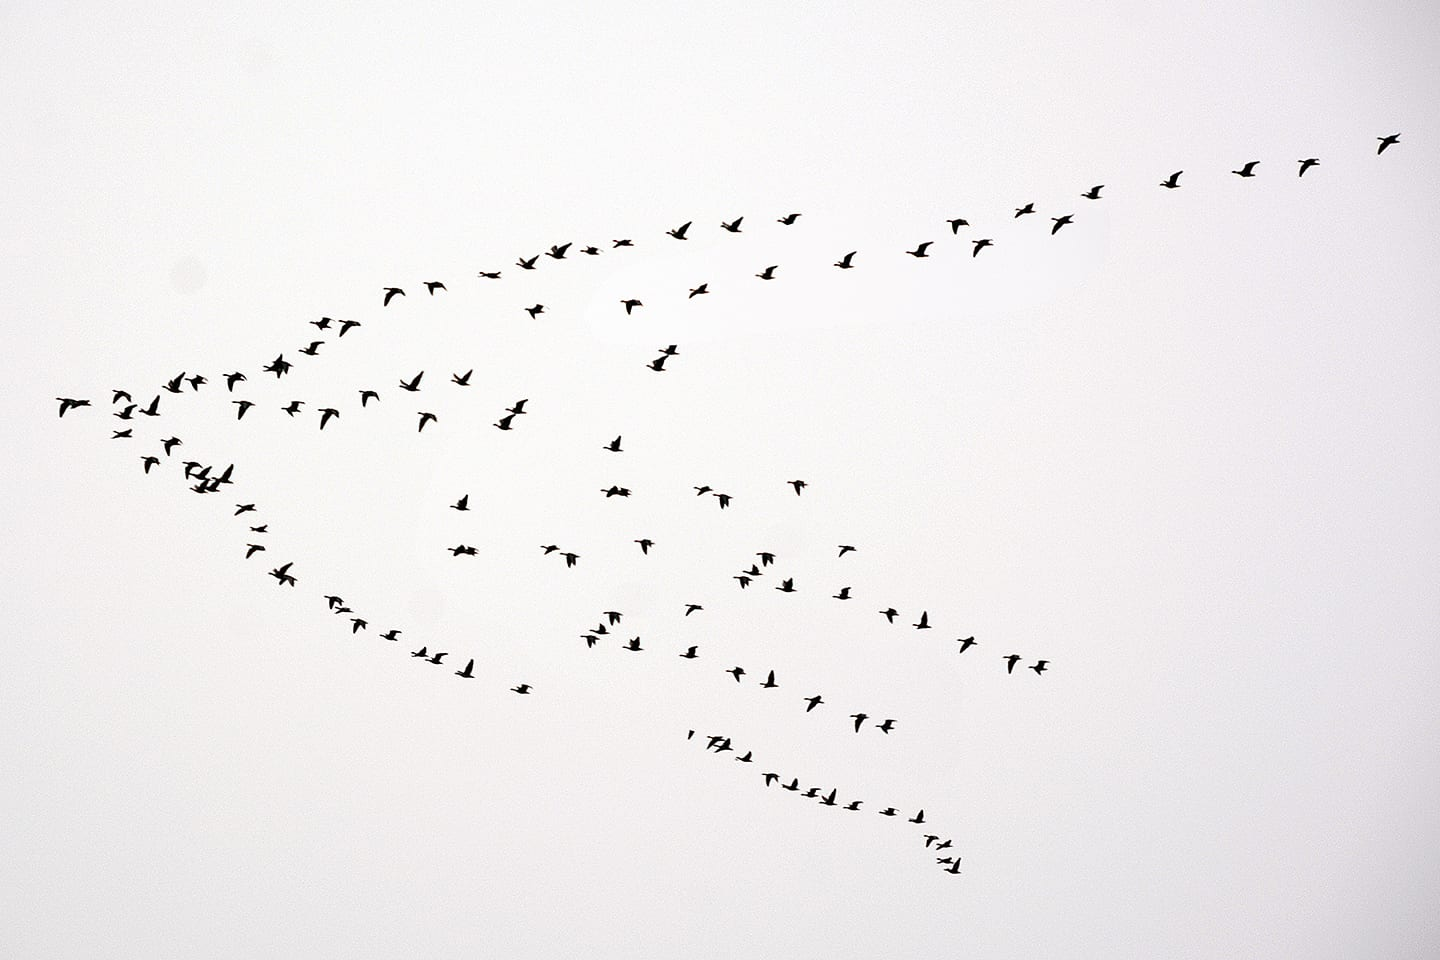 Skein of pink footed geese flying